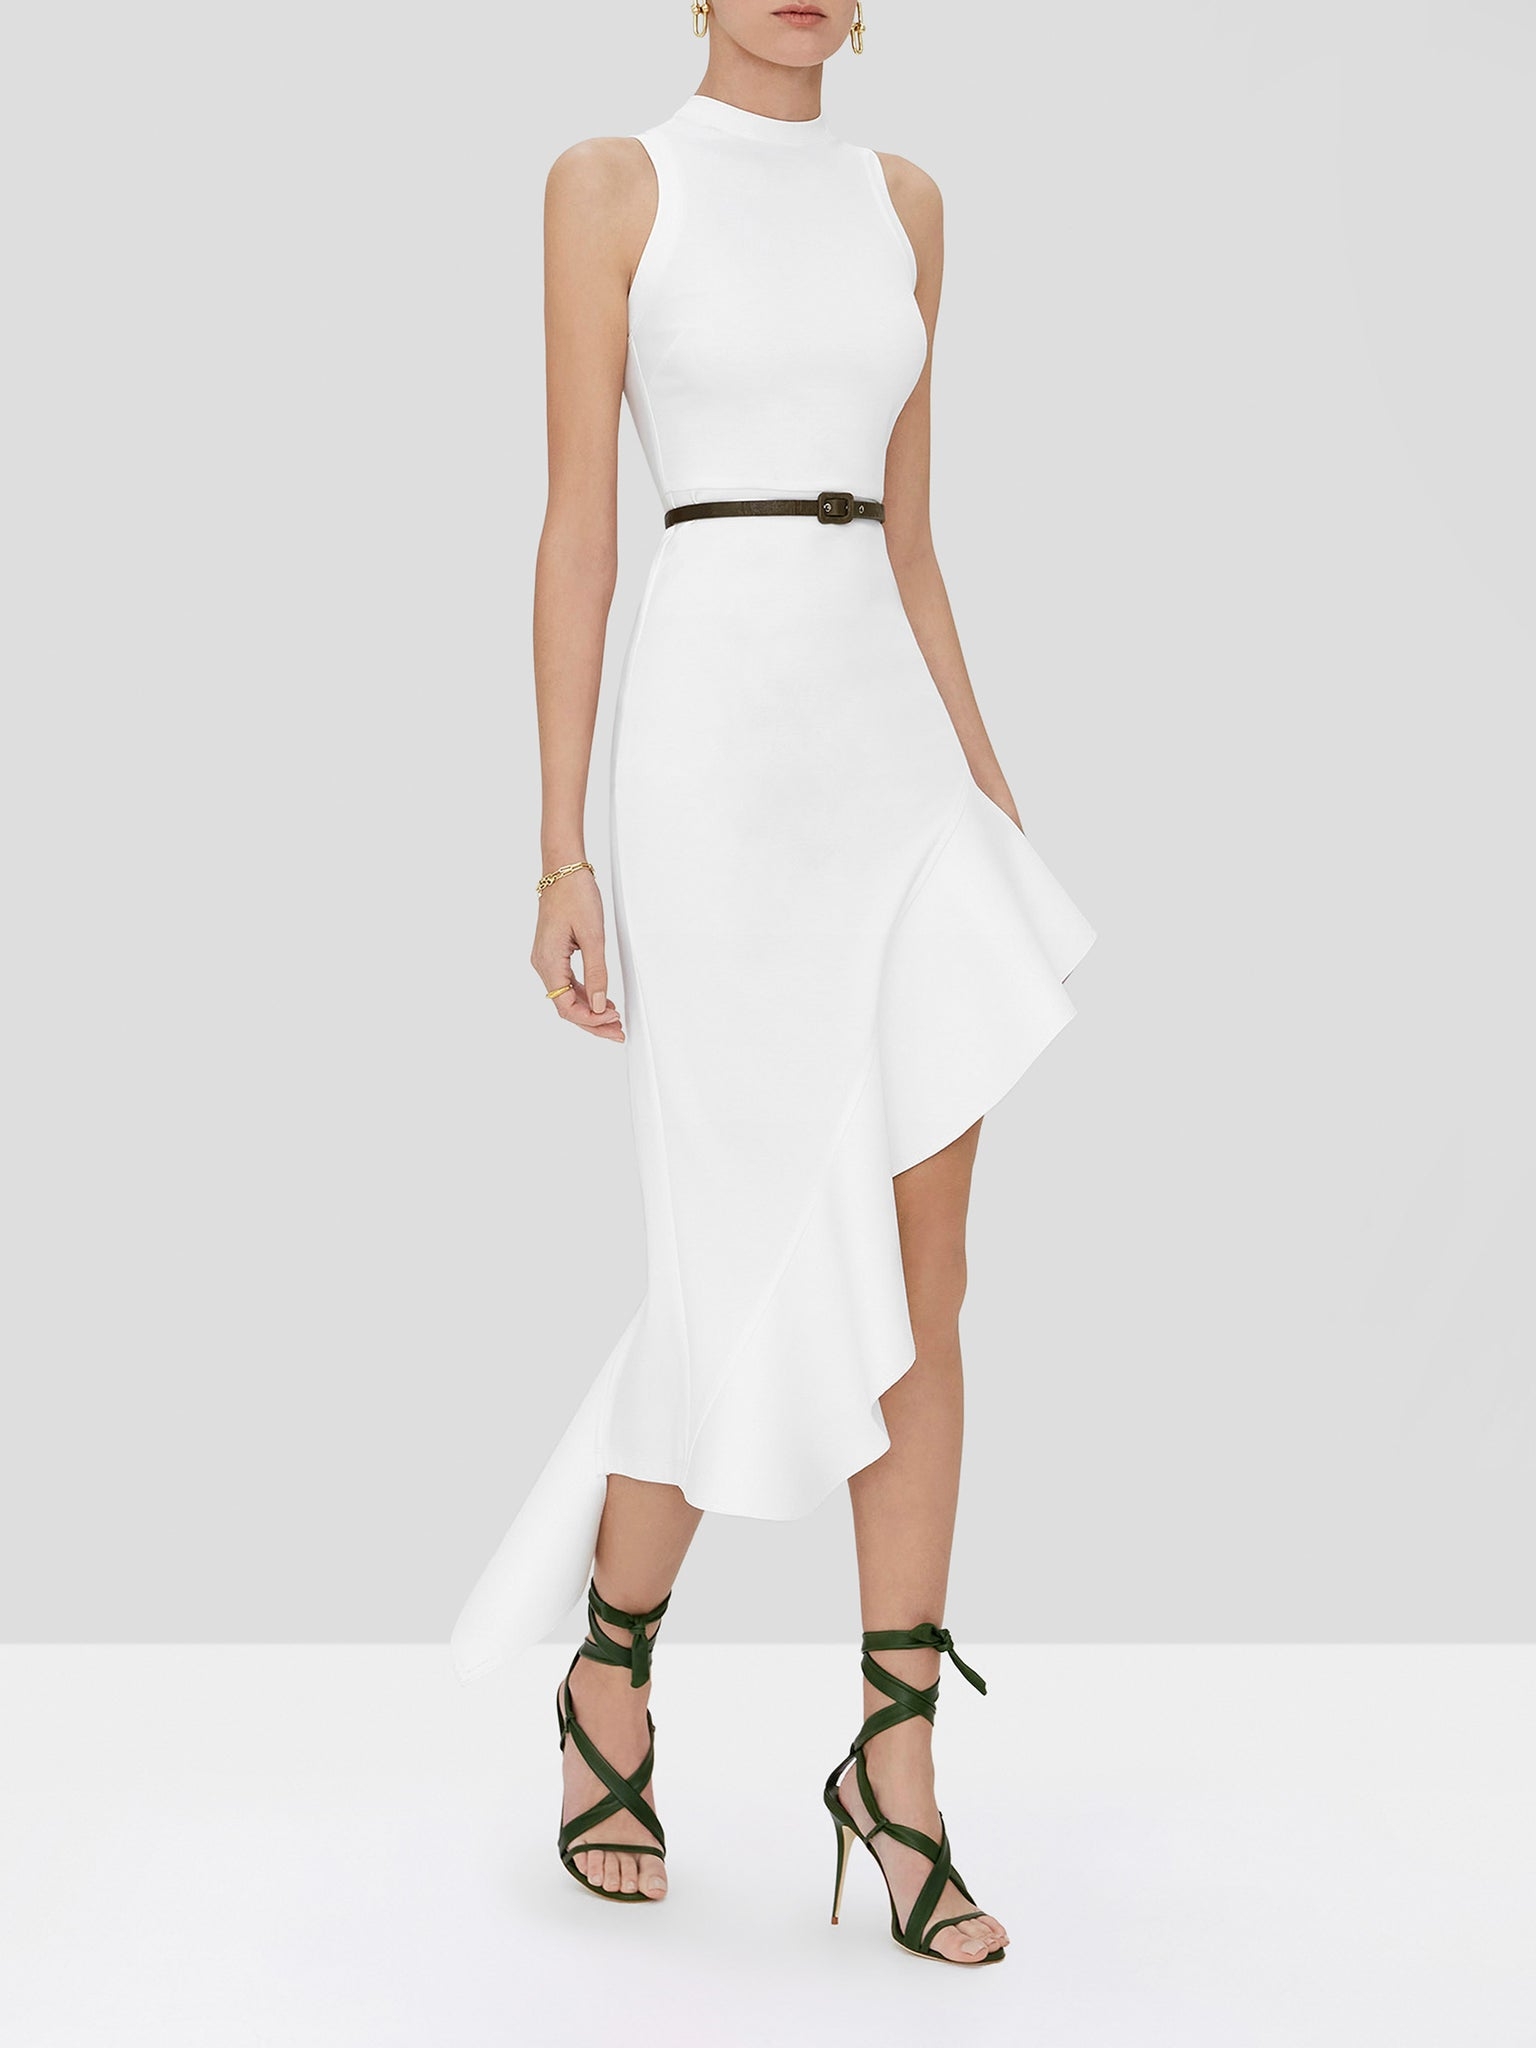 adva dress in white